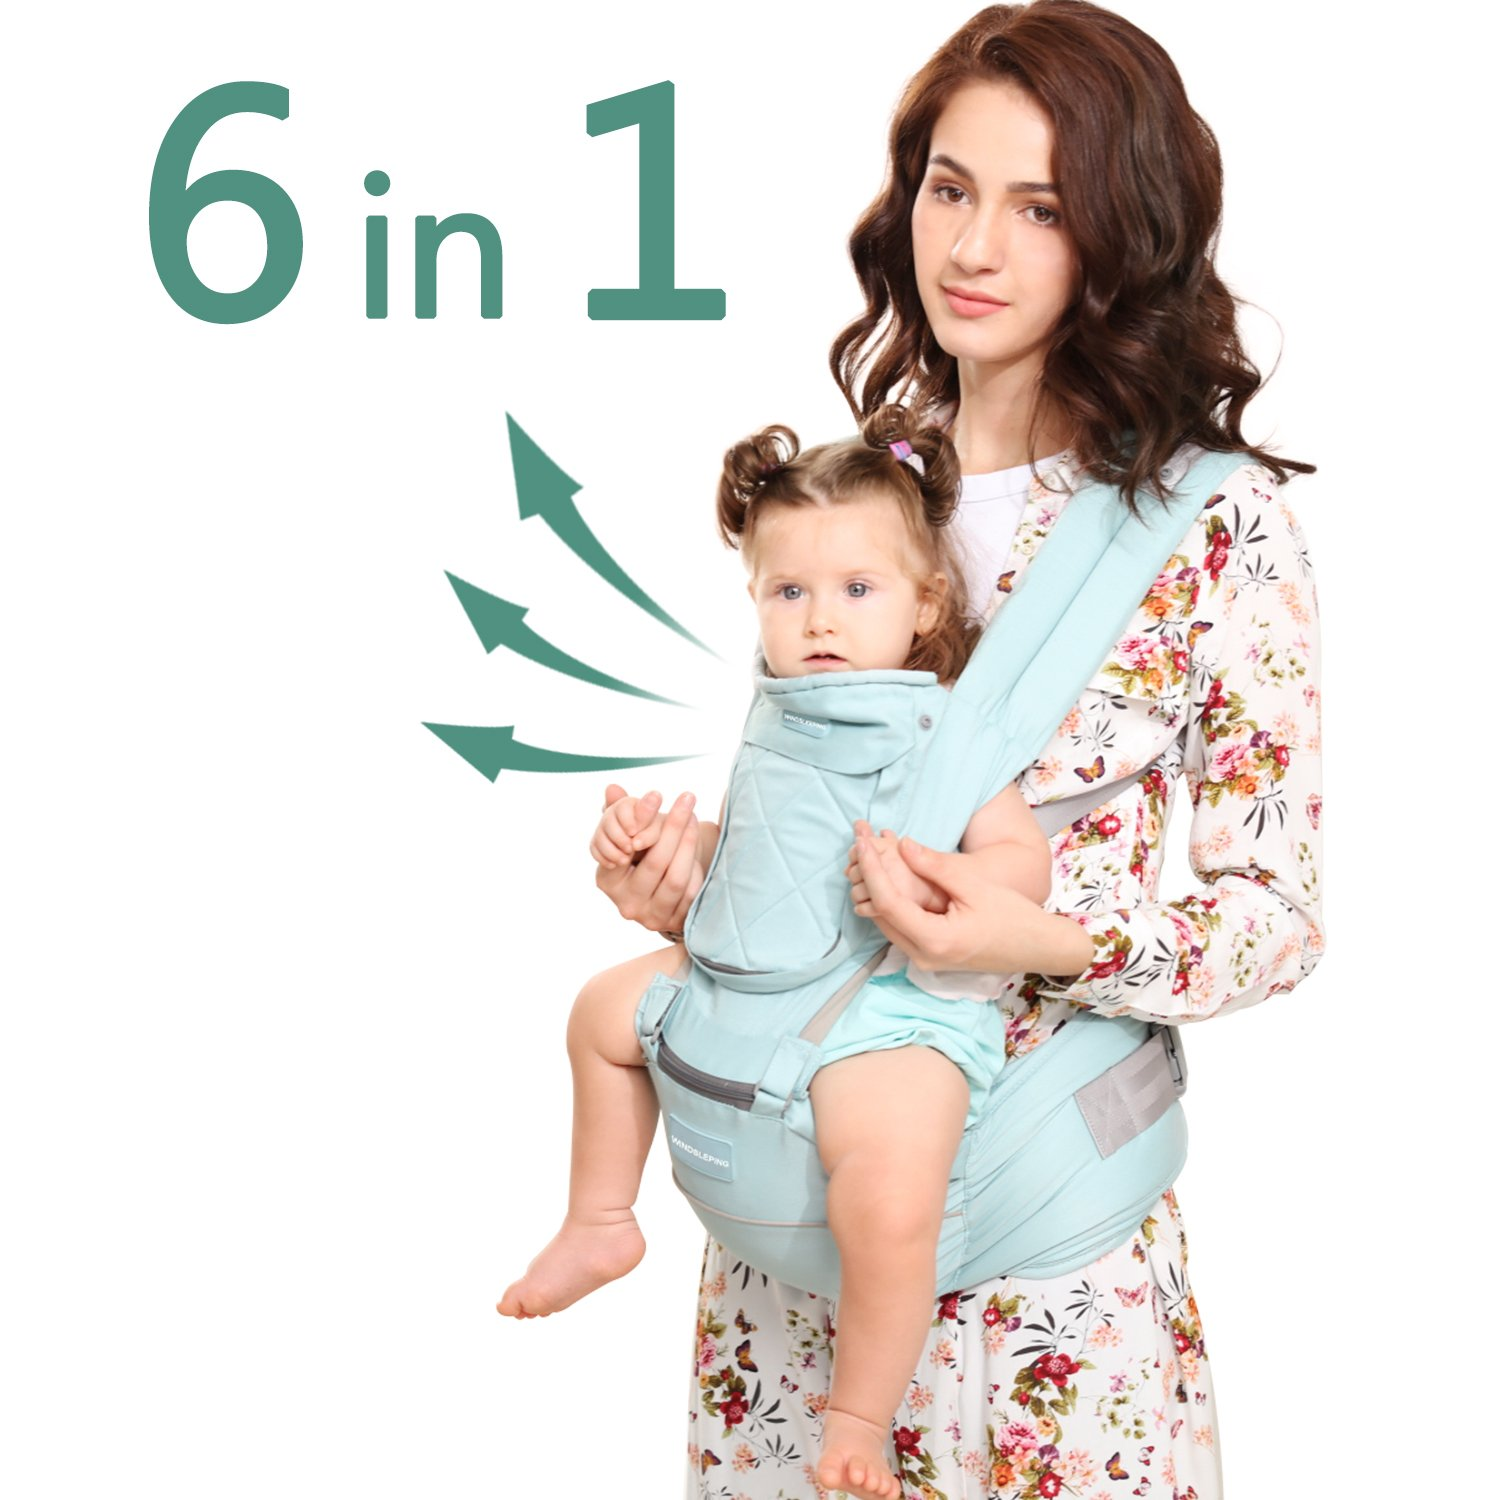 Windsleeping Baby Carrier Portable Front Baby Sling Detachable Perfect for Nursing 3 Months to 24 Months Infant and Toddlers - Dark Blue 00111